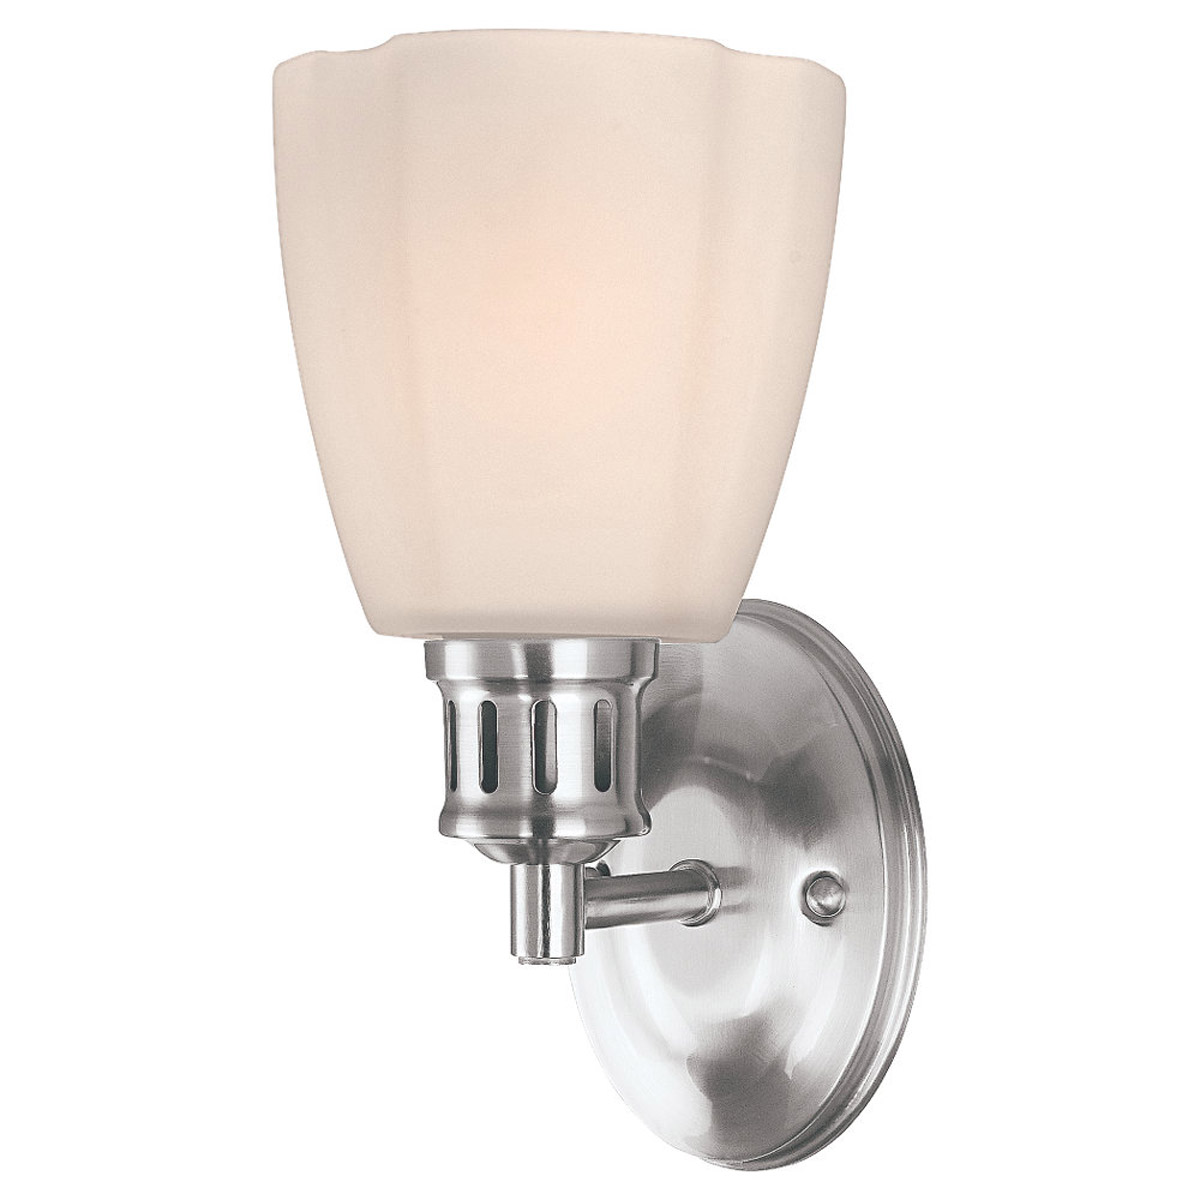 Sea Gull Lighting Century 1 Light Bath Vanity in Brushed Nickel 41474-962